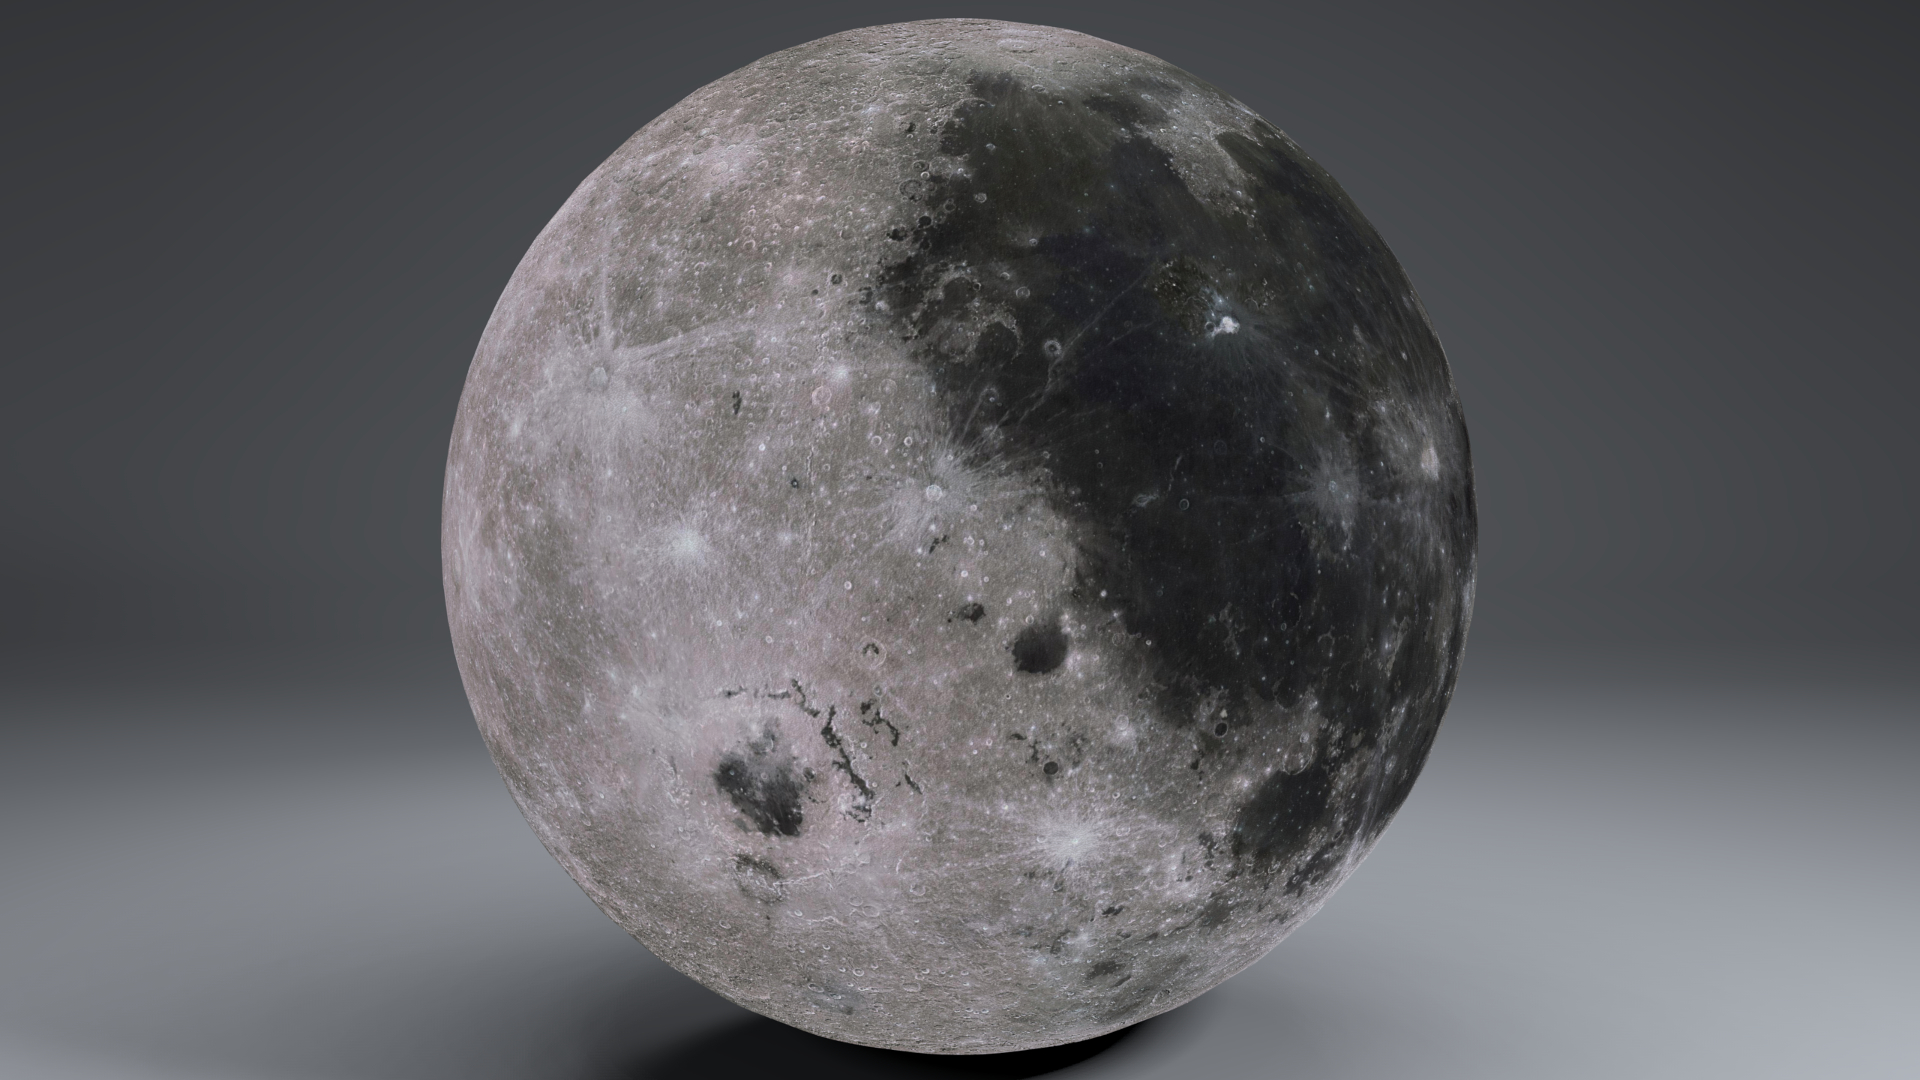 moonglobe 8k 3d model 3ds fbx blend dae obj 221871